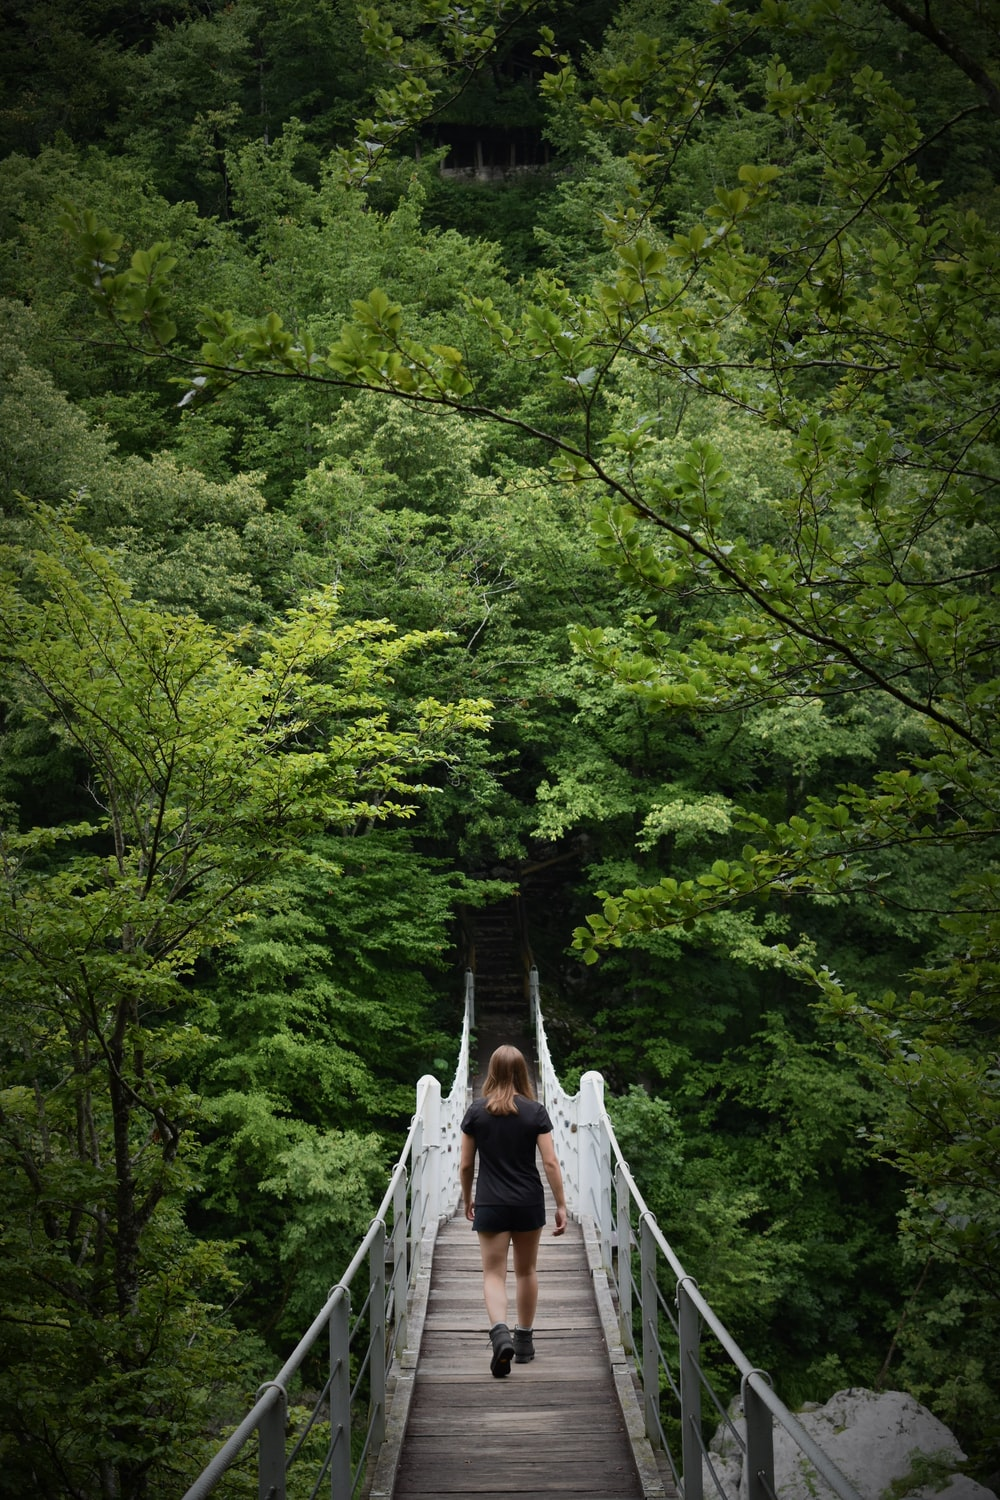 woman in white dress walking on hanging bridge